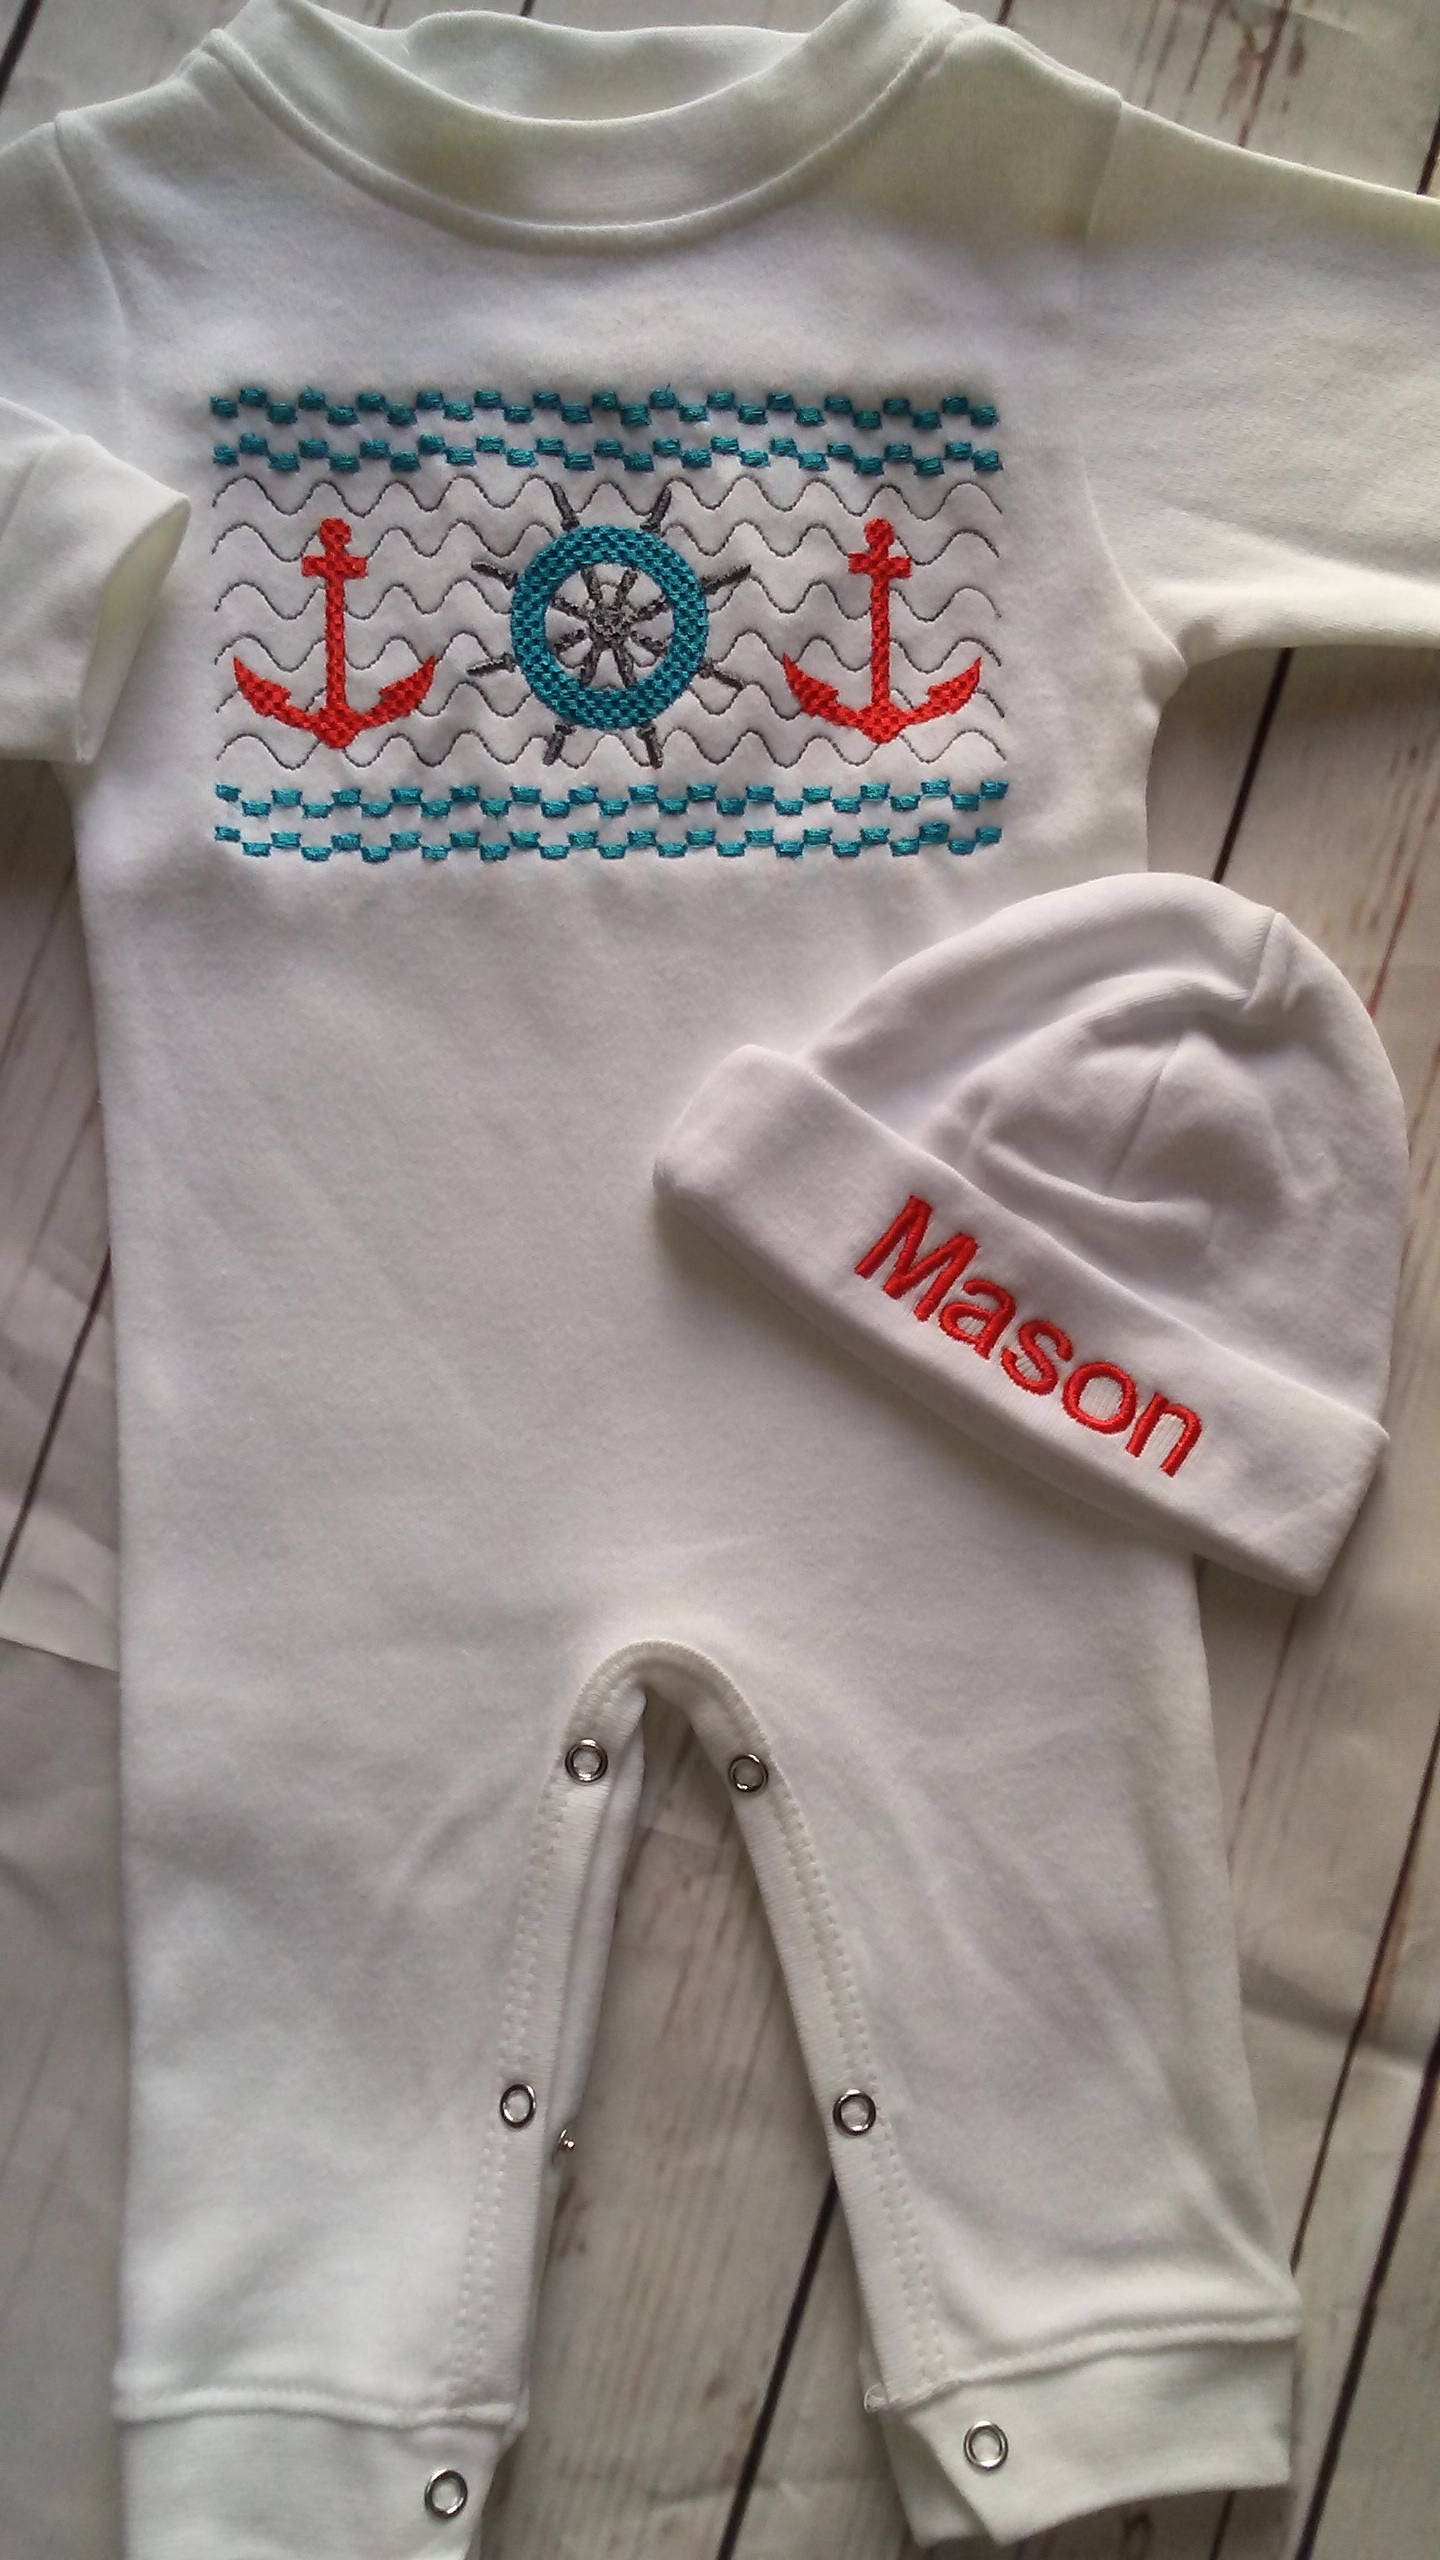 4b23ed9539f Newborn Boy Coming Home Outfit Baby Boy Hospital Outfit Take Me Home  Newborn Baby Gift Baby Boy Clothes Personalized Newborn hat nautical